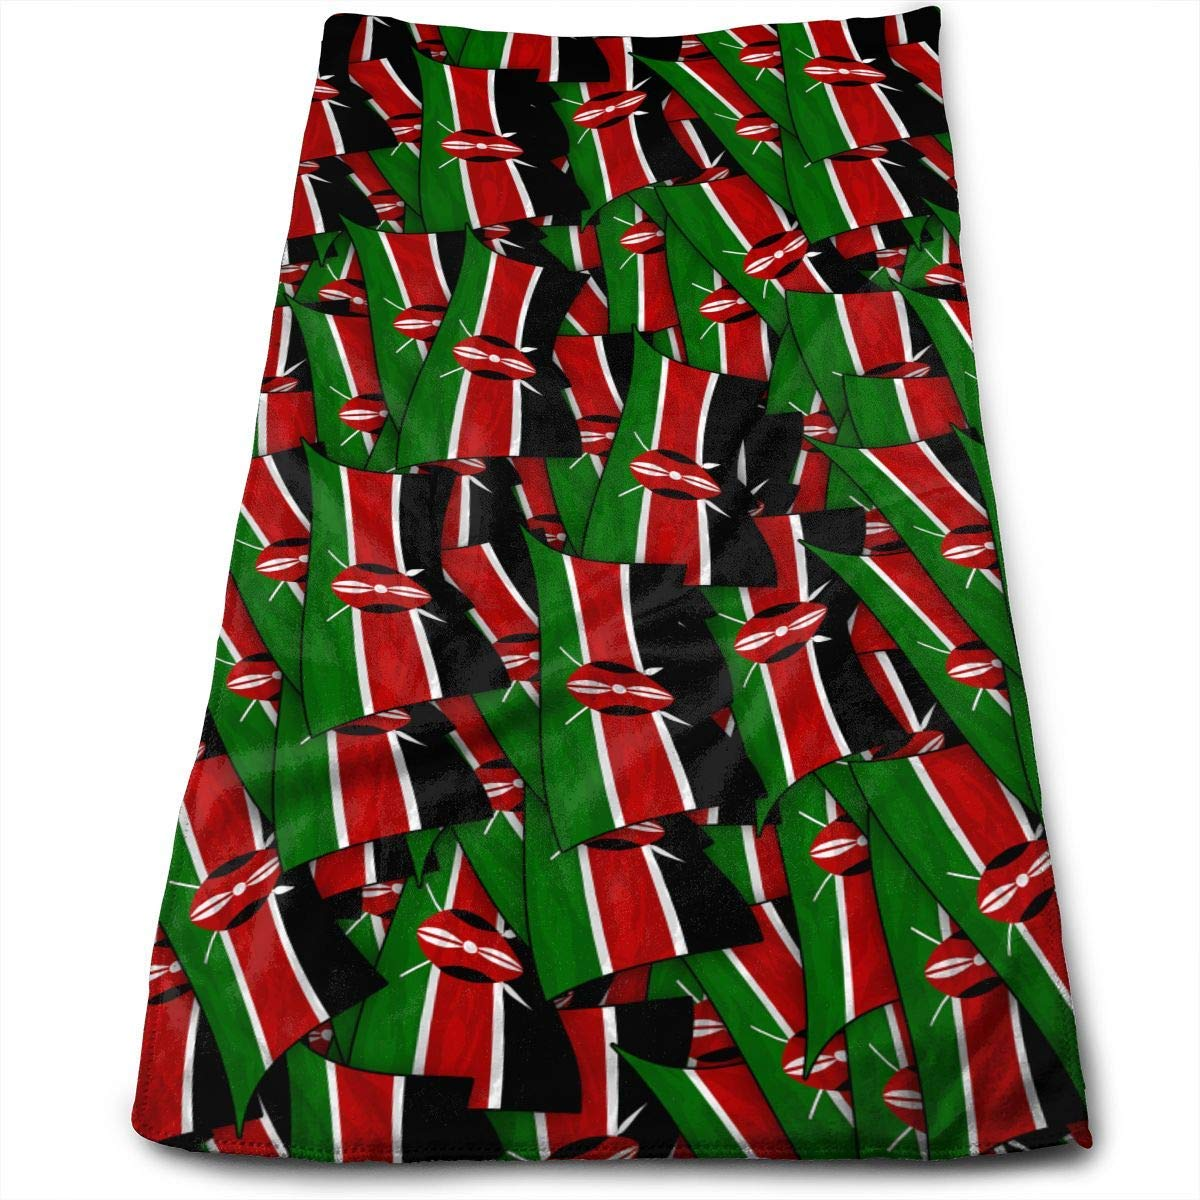 WCMBY Hand Towels Kenya Flag Wave Collage Face Towels Highly Absorbent Towels for Face Gym And Spa 12\' X 27.5\'